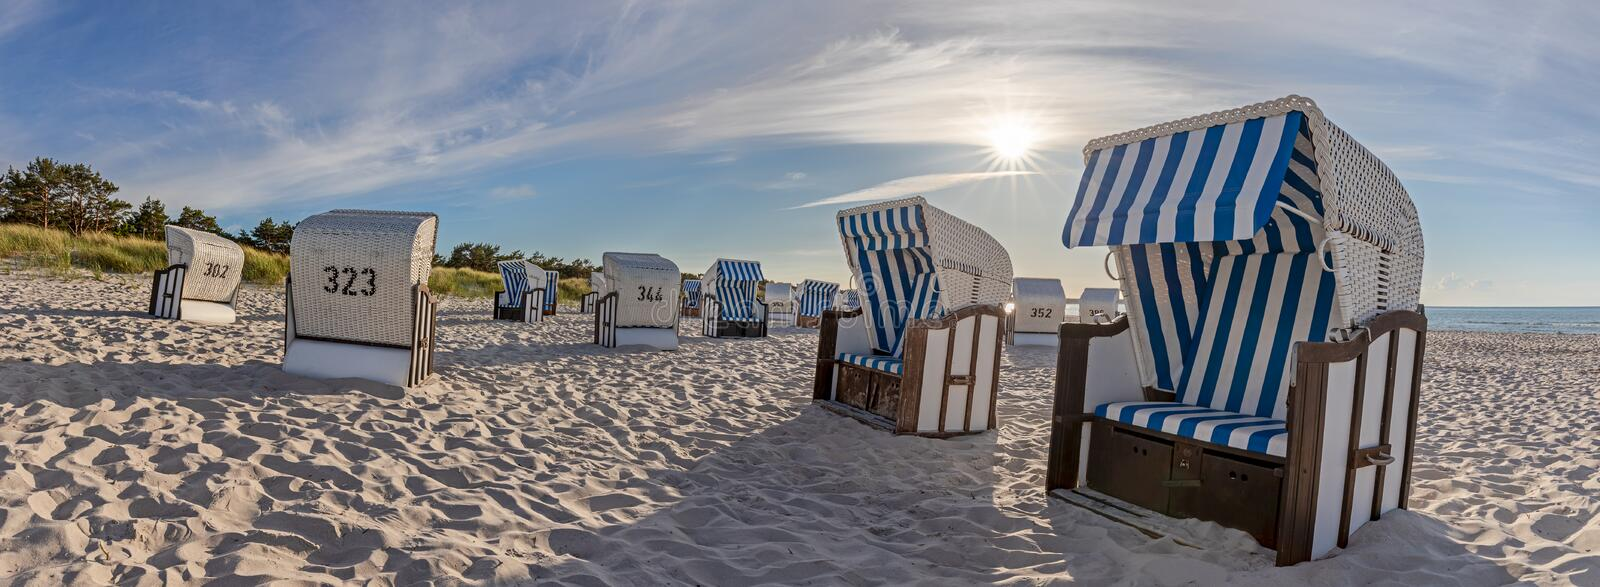 Beach with Canopied beach chairs in evening light stock photos